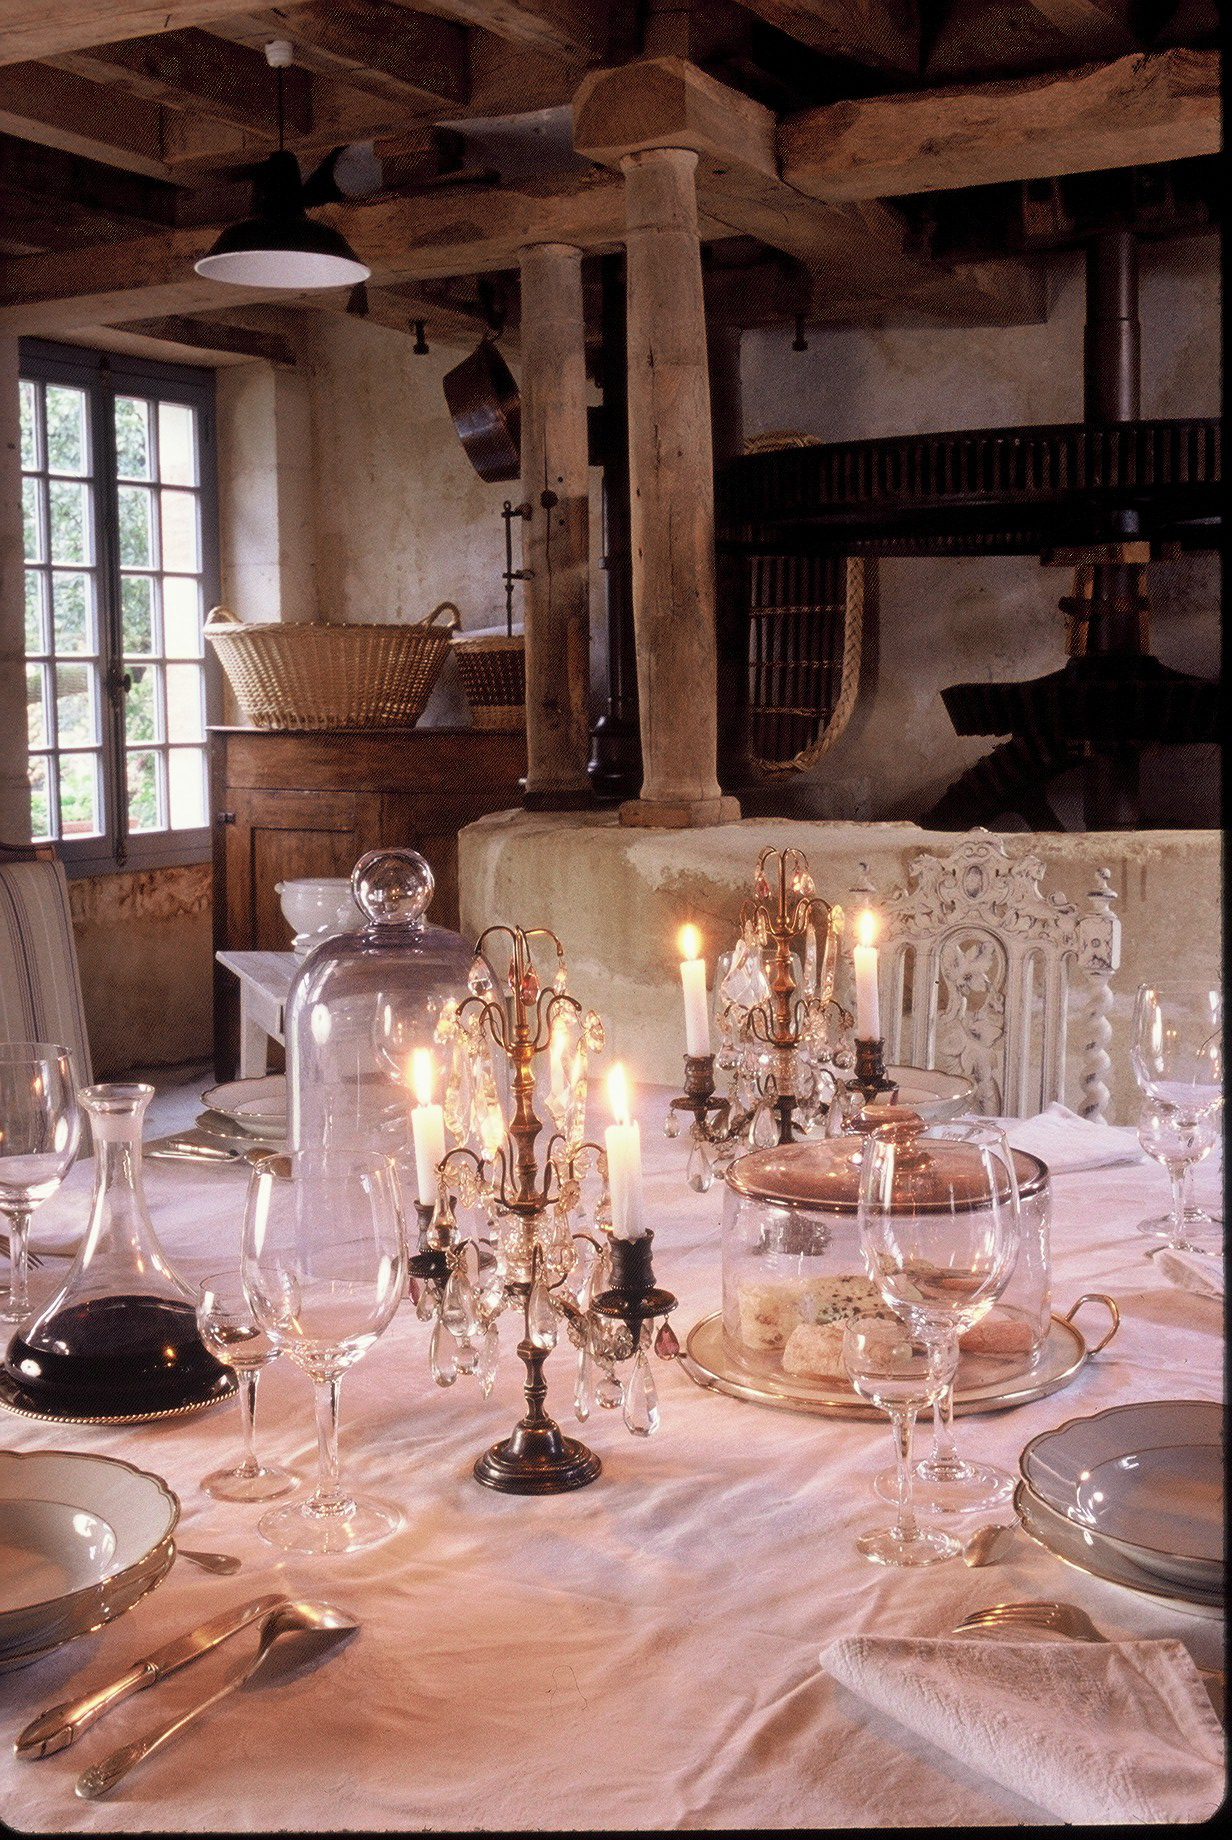 dining table candelabra.JPG